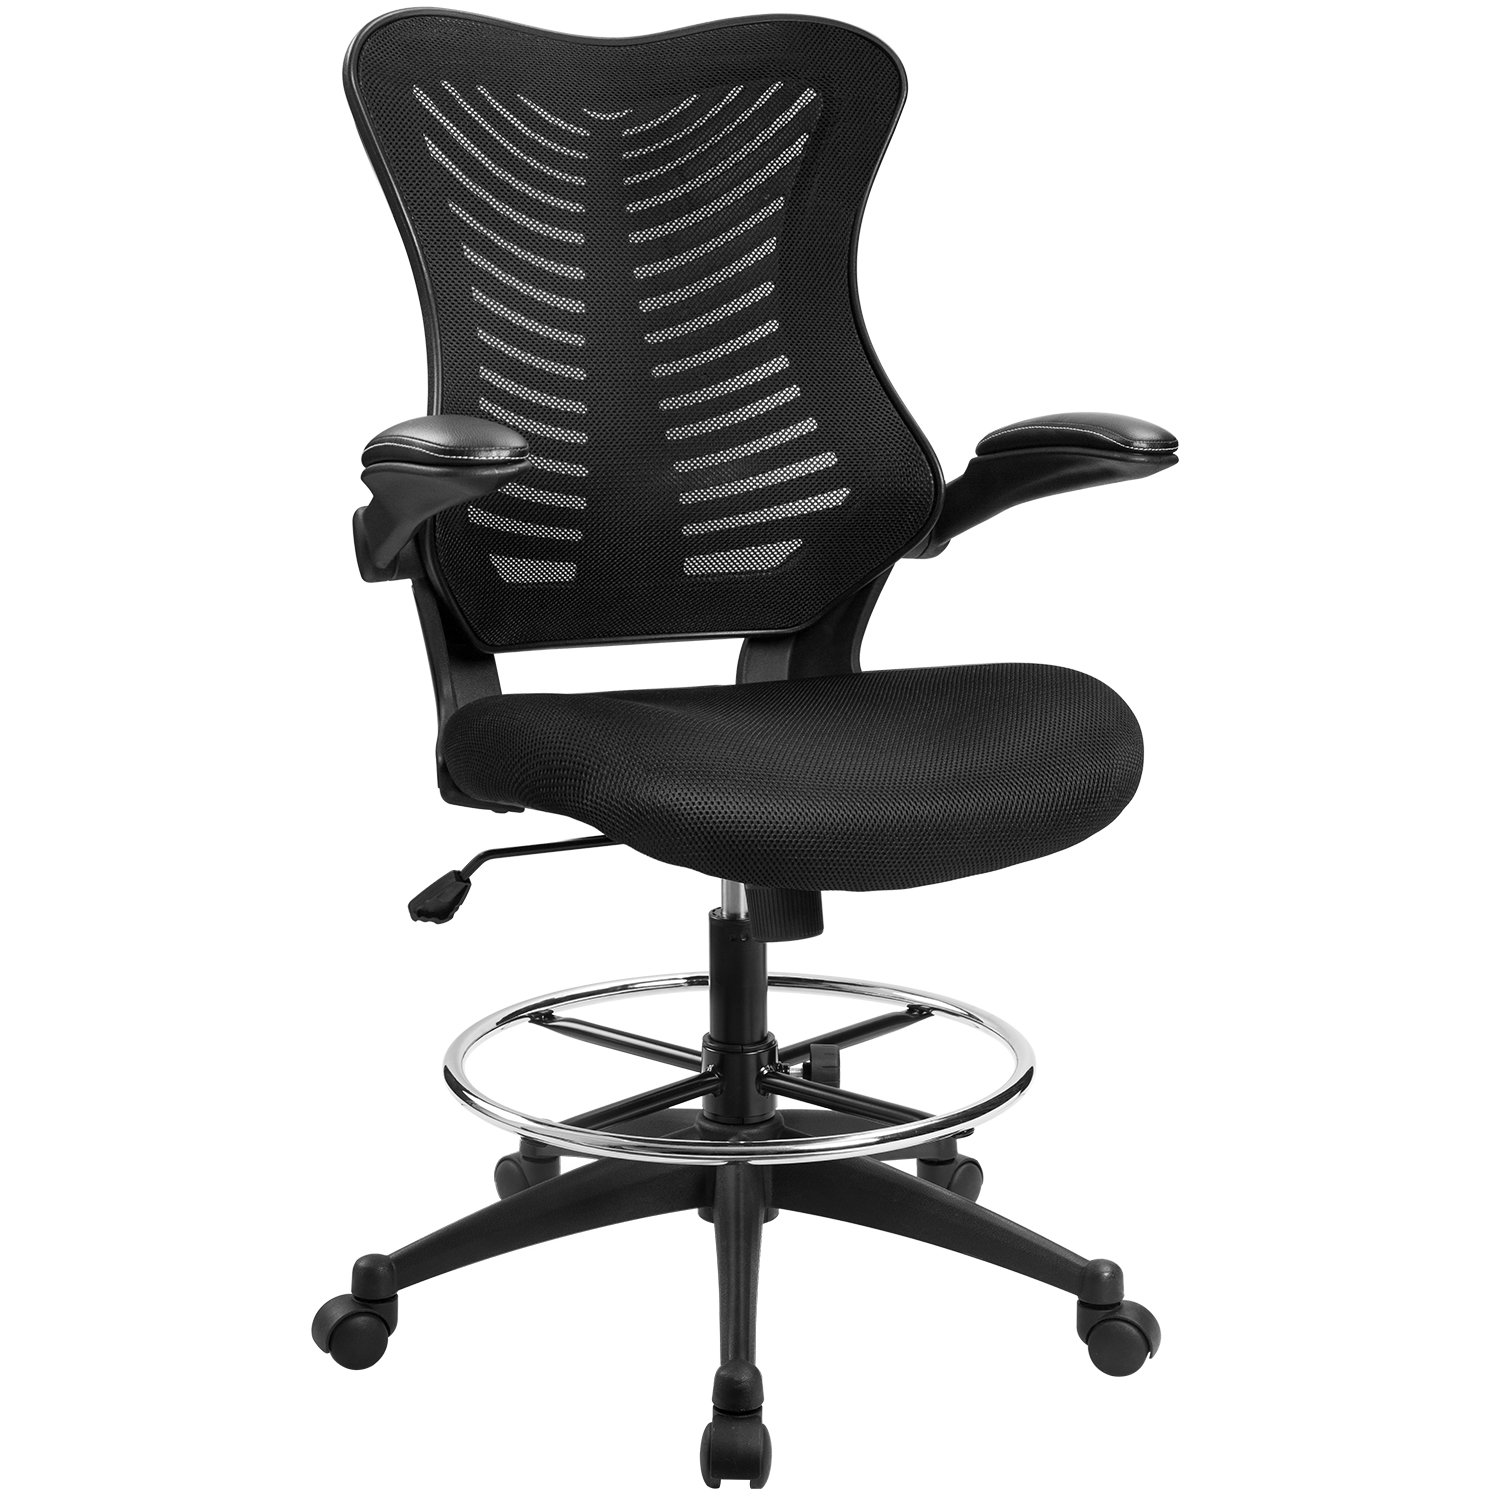 Furmax Drafting Chair Tall Office Chair with Flip-up Armrests Executive Computer Standing Desk Chair with Adjustable Footrest Ring (Black) by Furmax